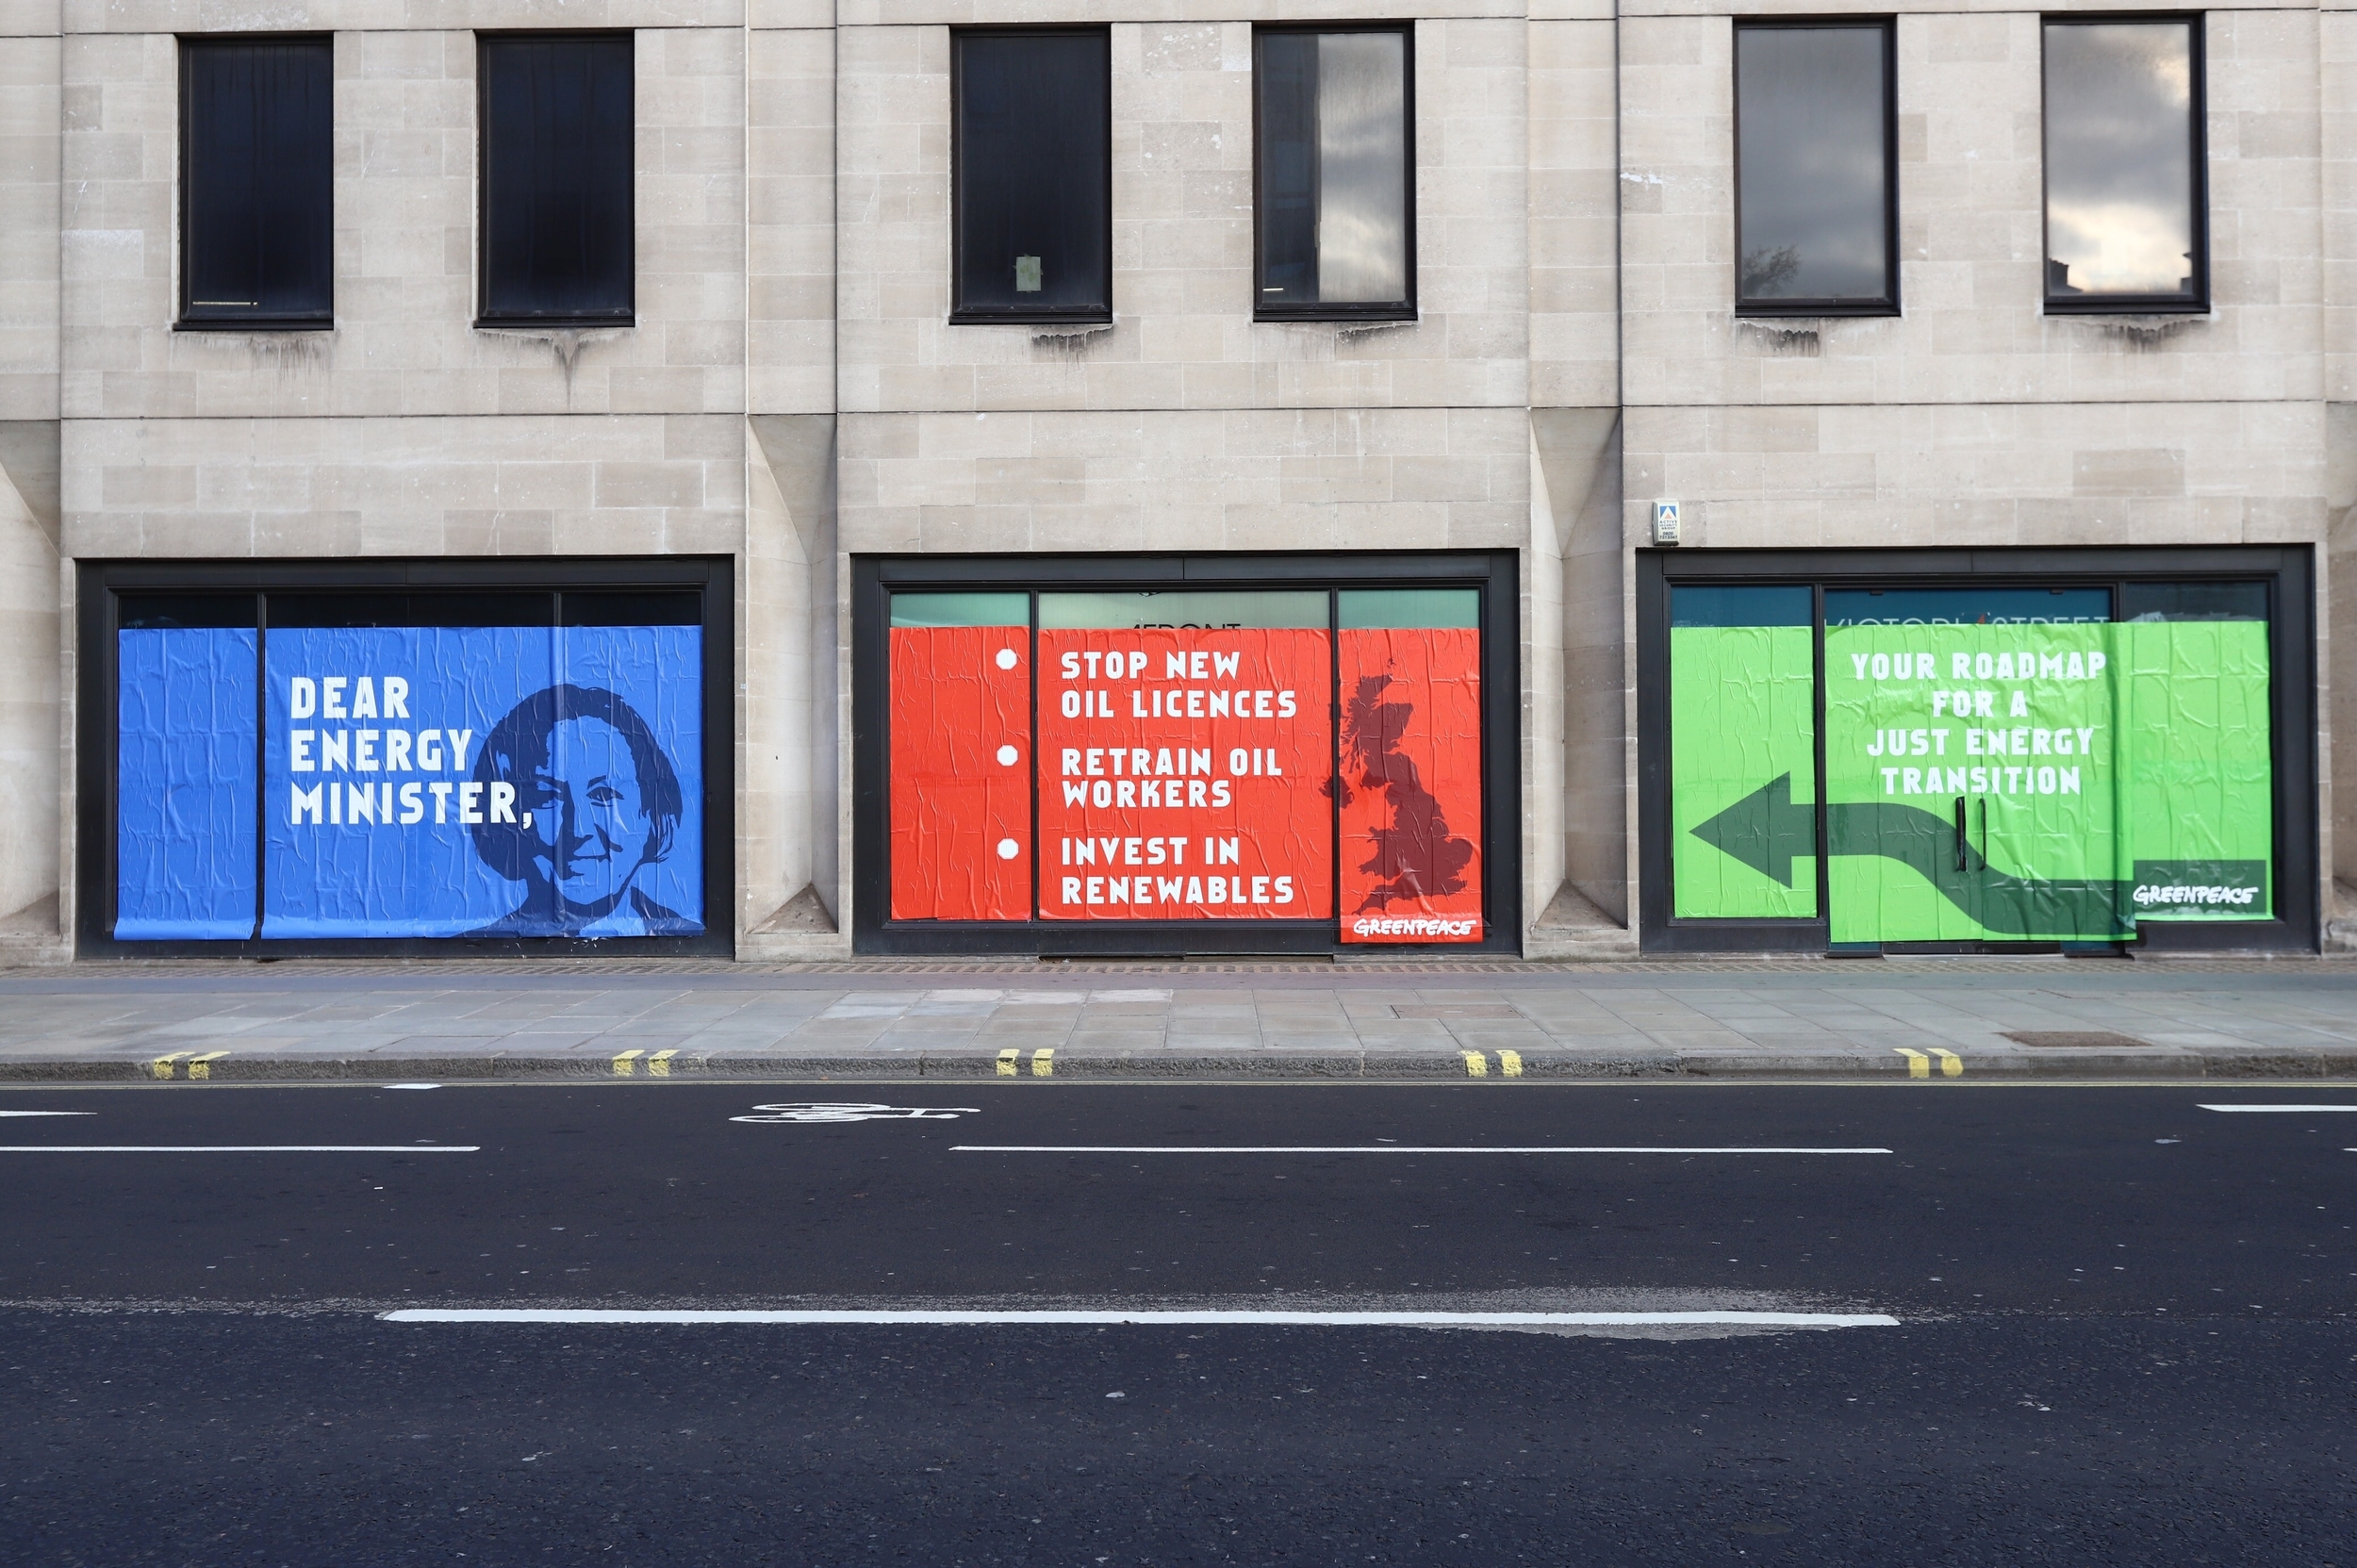 A building with three full-height, long windows plastered with a message to the energy minister. The blue, red and green posters have the energy minister's face, a map of the UK and an arrow on them, and read 'Dear energy minister. Stop new oil licenses. Retrain oil workers. Invest in renewables and the final green poster with the arrow points to the previous list, reading 'Your Roadmap for a Just Energy Transition'